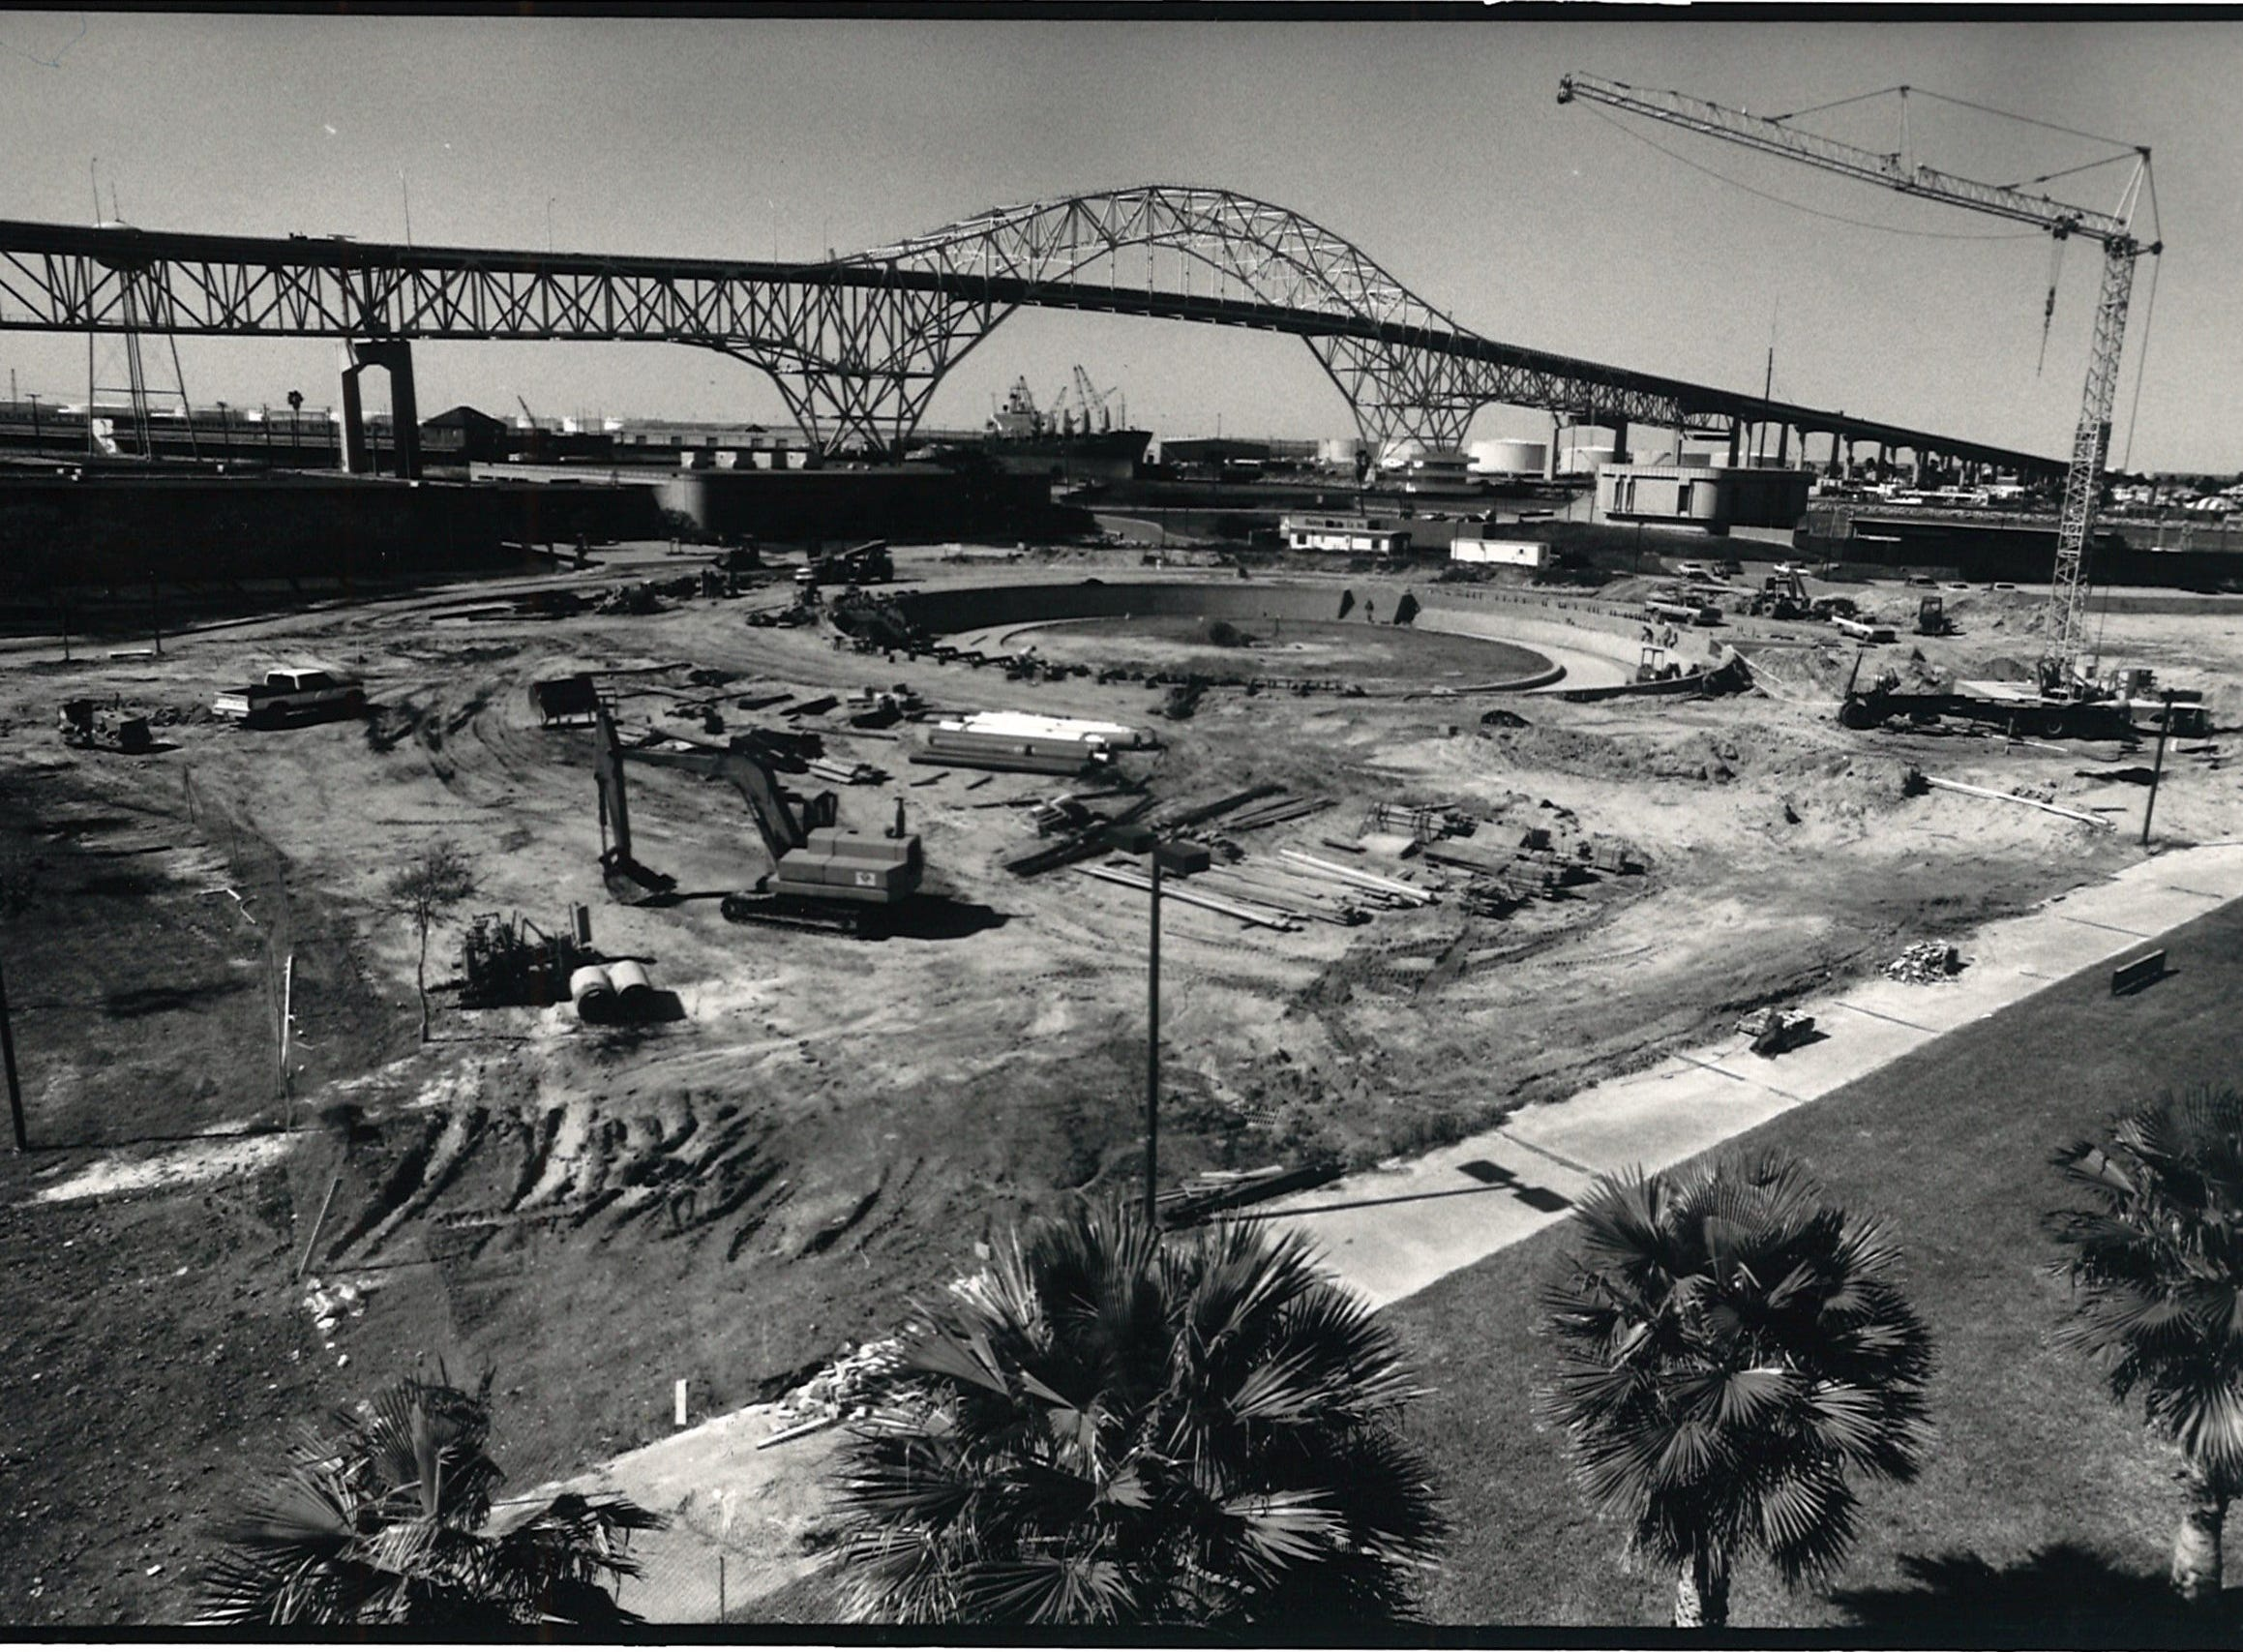 The Watergarden under construction at the Bayfront Arts and Science complex in Corpus Christi on March 19, 1988.